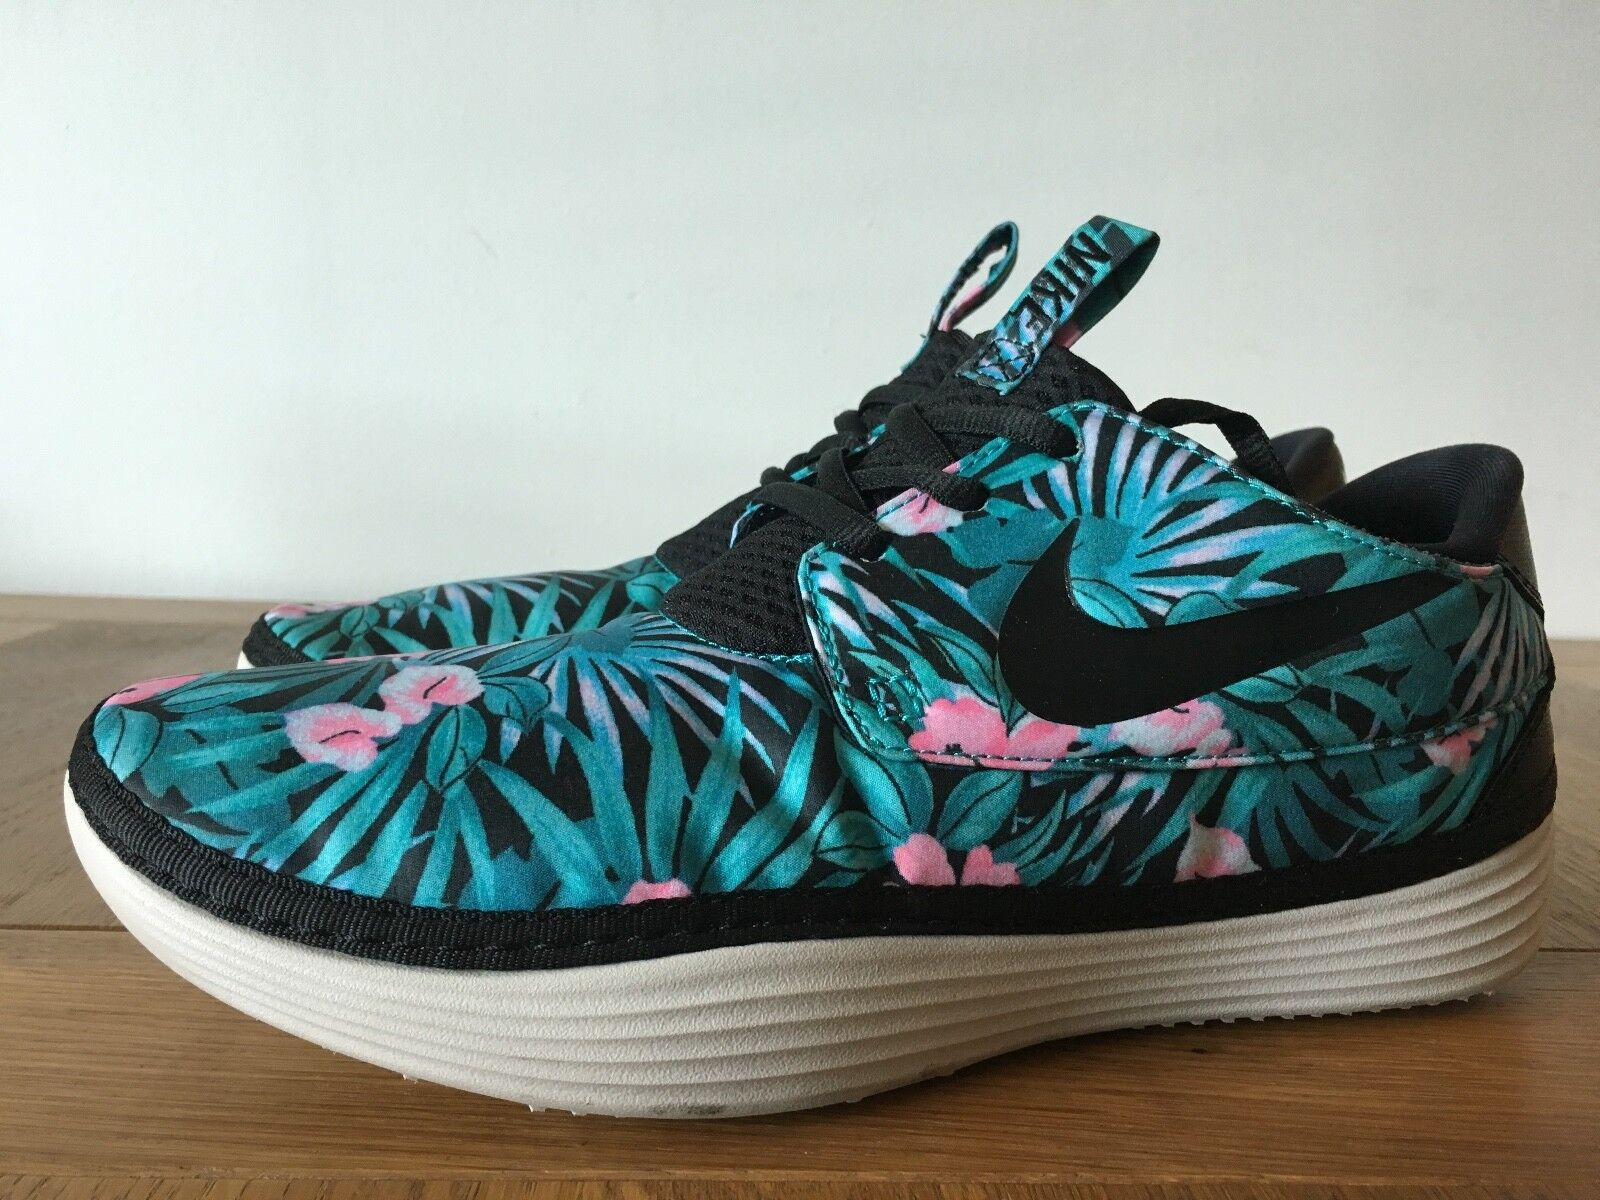 NIKE SOLARSOFT UK MOCCASIN SP FLORAL PACK UK SOLARSOFT 8 US 9 ATMOS PATTA CLOT 39aba7